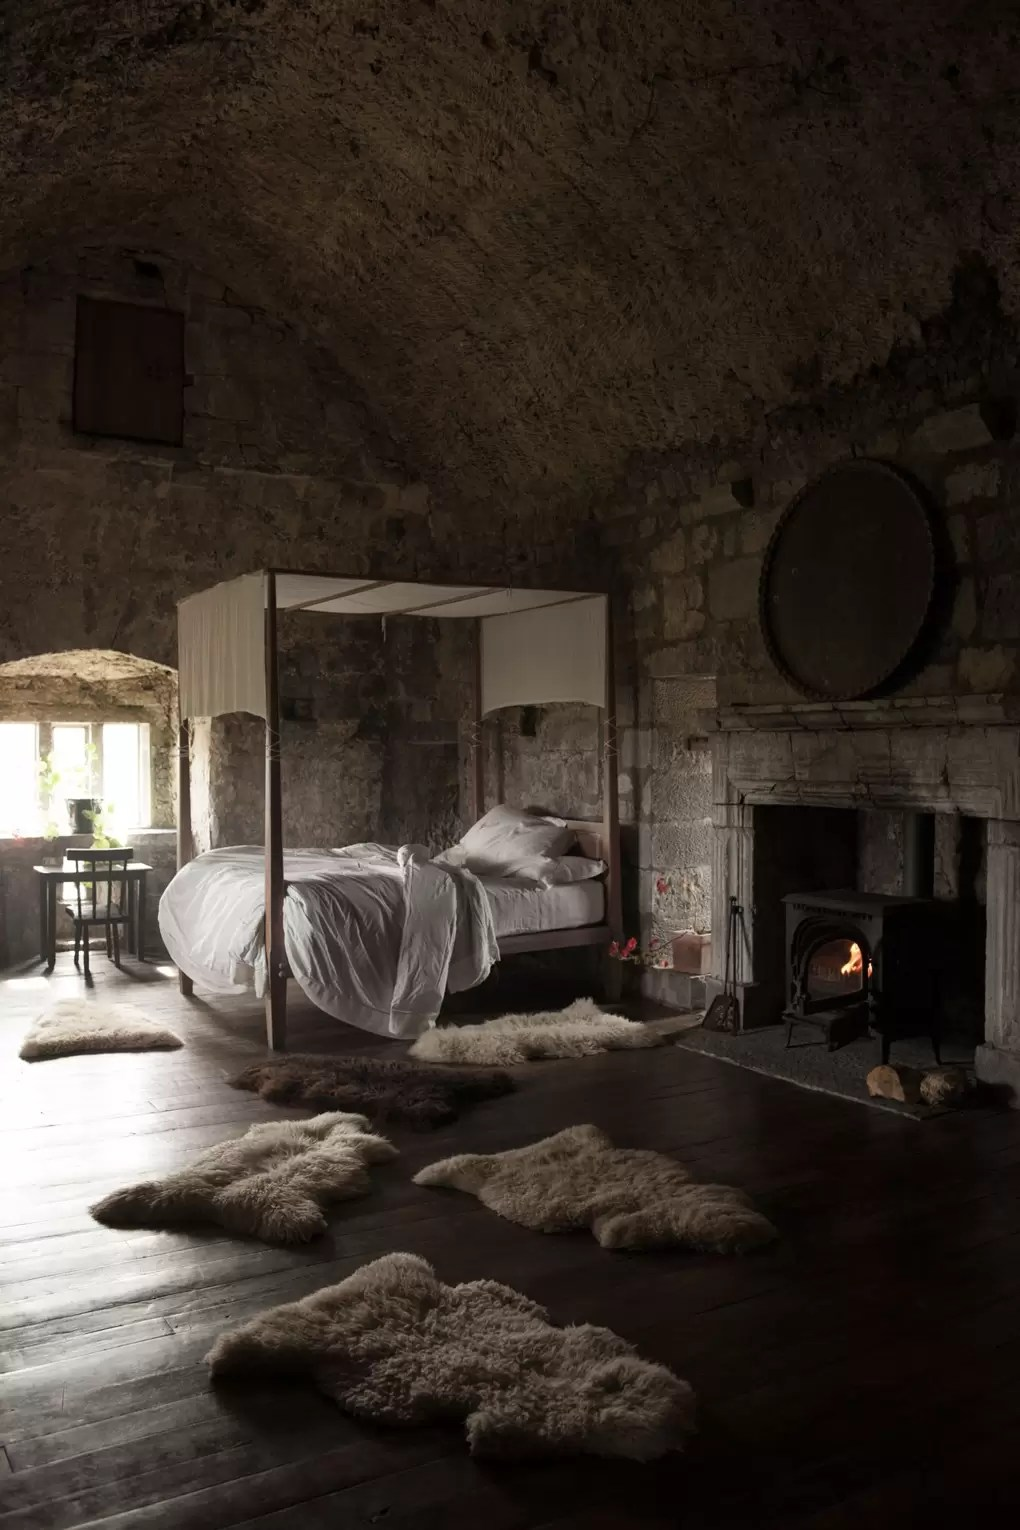 Garderobe Home Affair Best Irish Castles To Visit Where To Stay In Ireland Cn Traveller